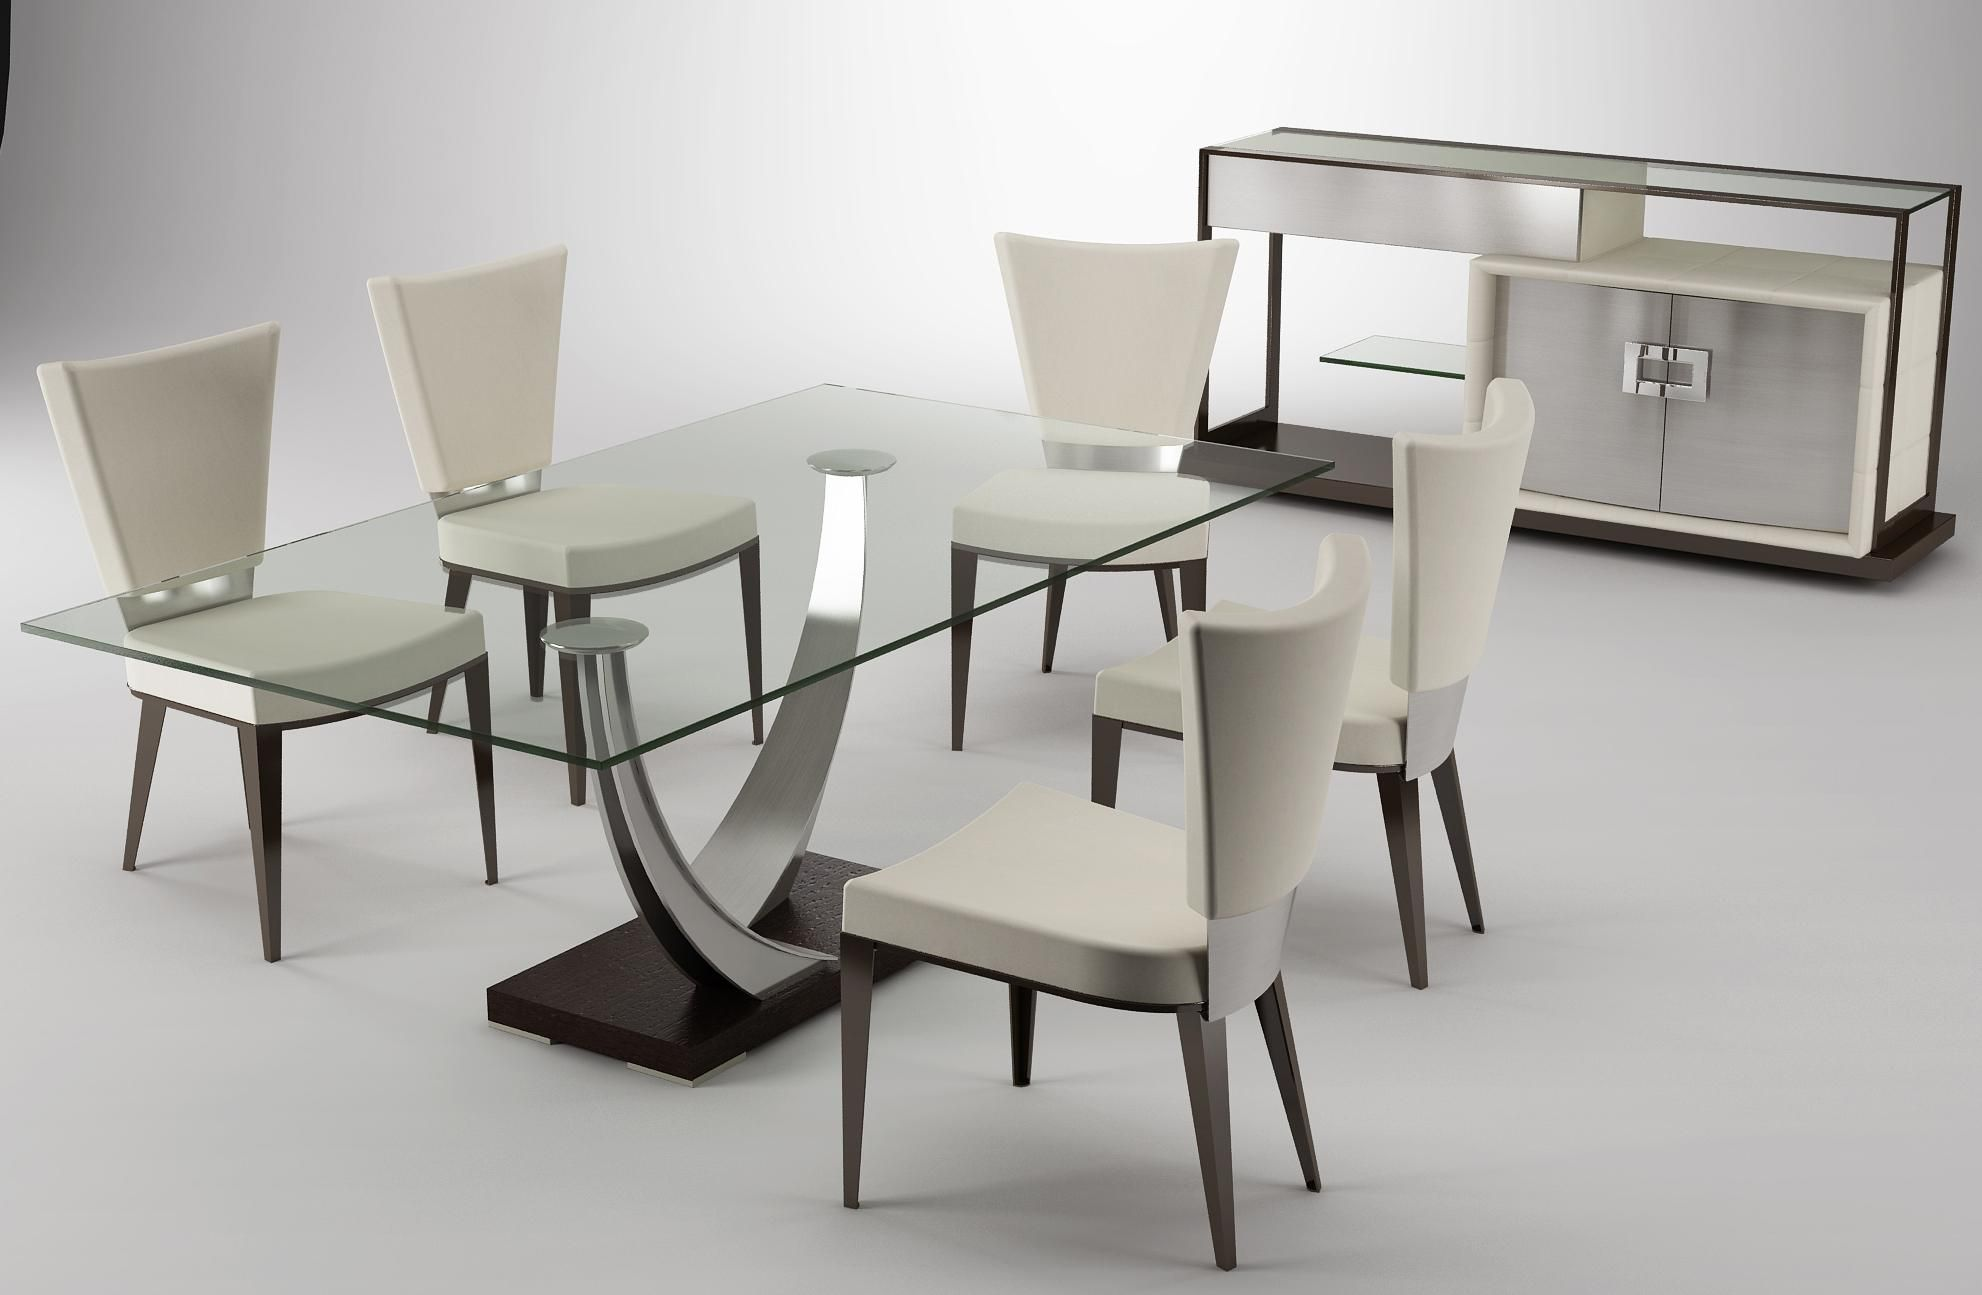 Amazing modern stylish dining room table set designs elite for Living room designs with dining table